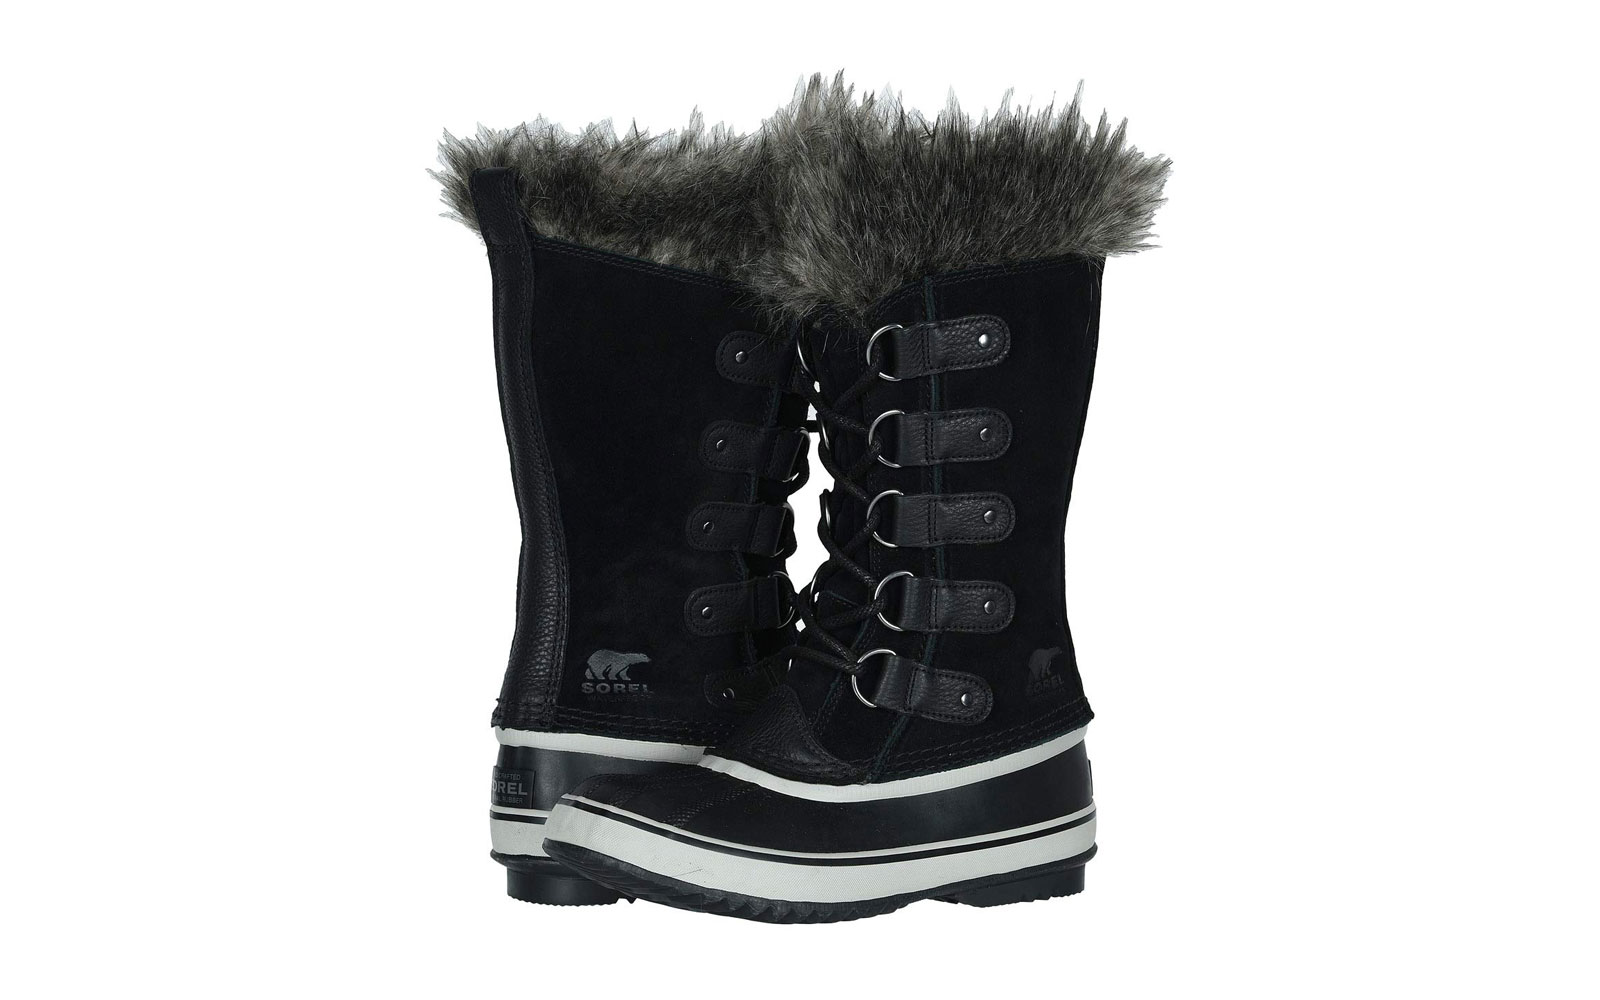 Women's Black Tall Snow Boots With Fur